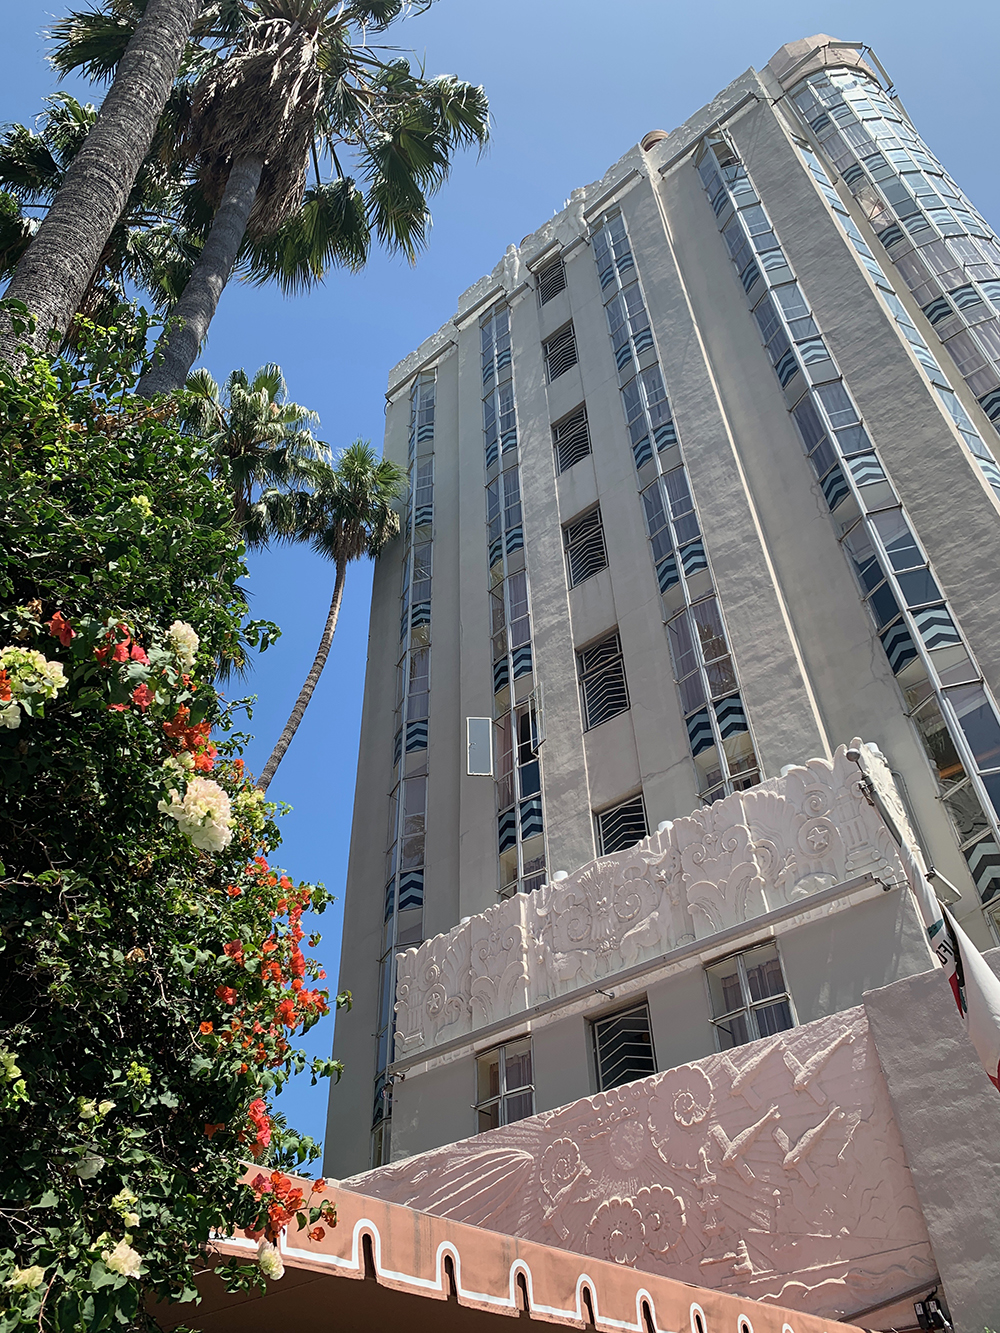 Sunset Tower Hotel is an iconic landmark in Los Angeles.